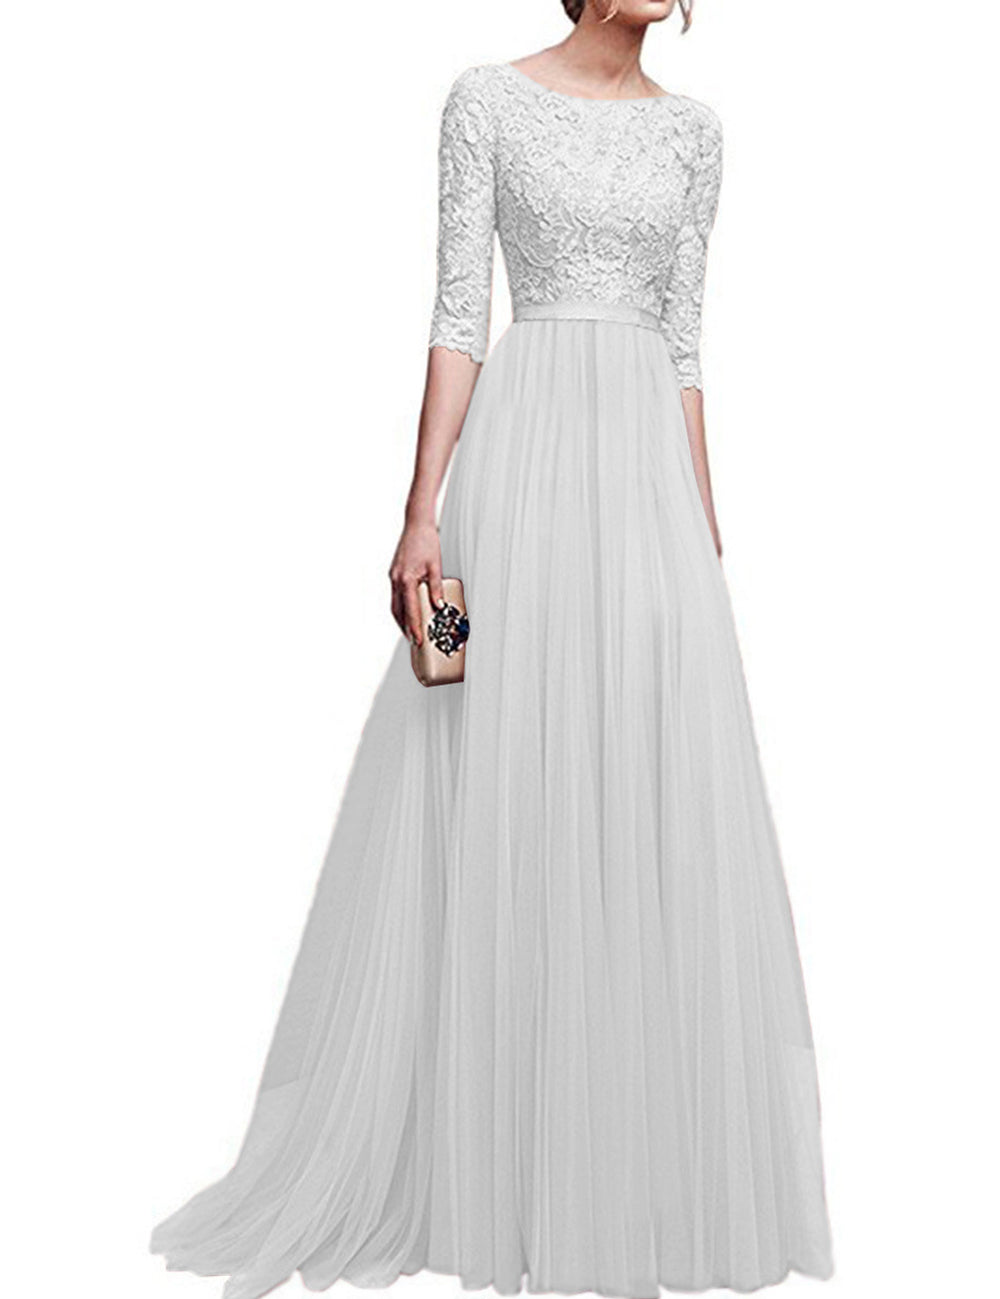 Cheap White Chiffon Lace Splice Half Sleeves Floor Length Maxi Dress Sale